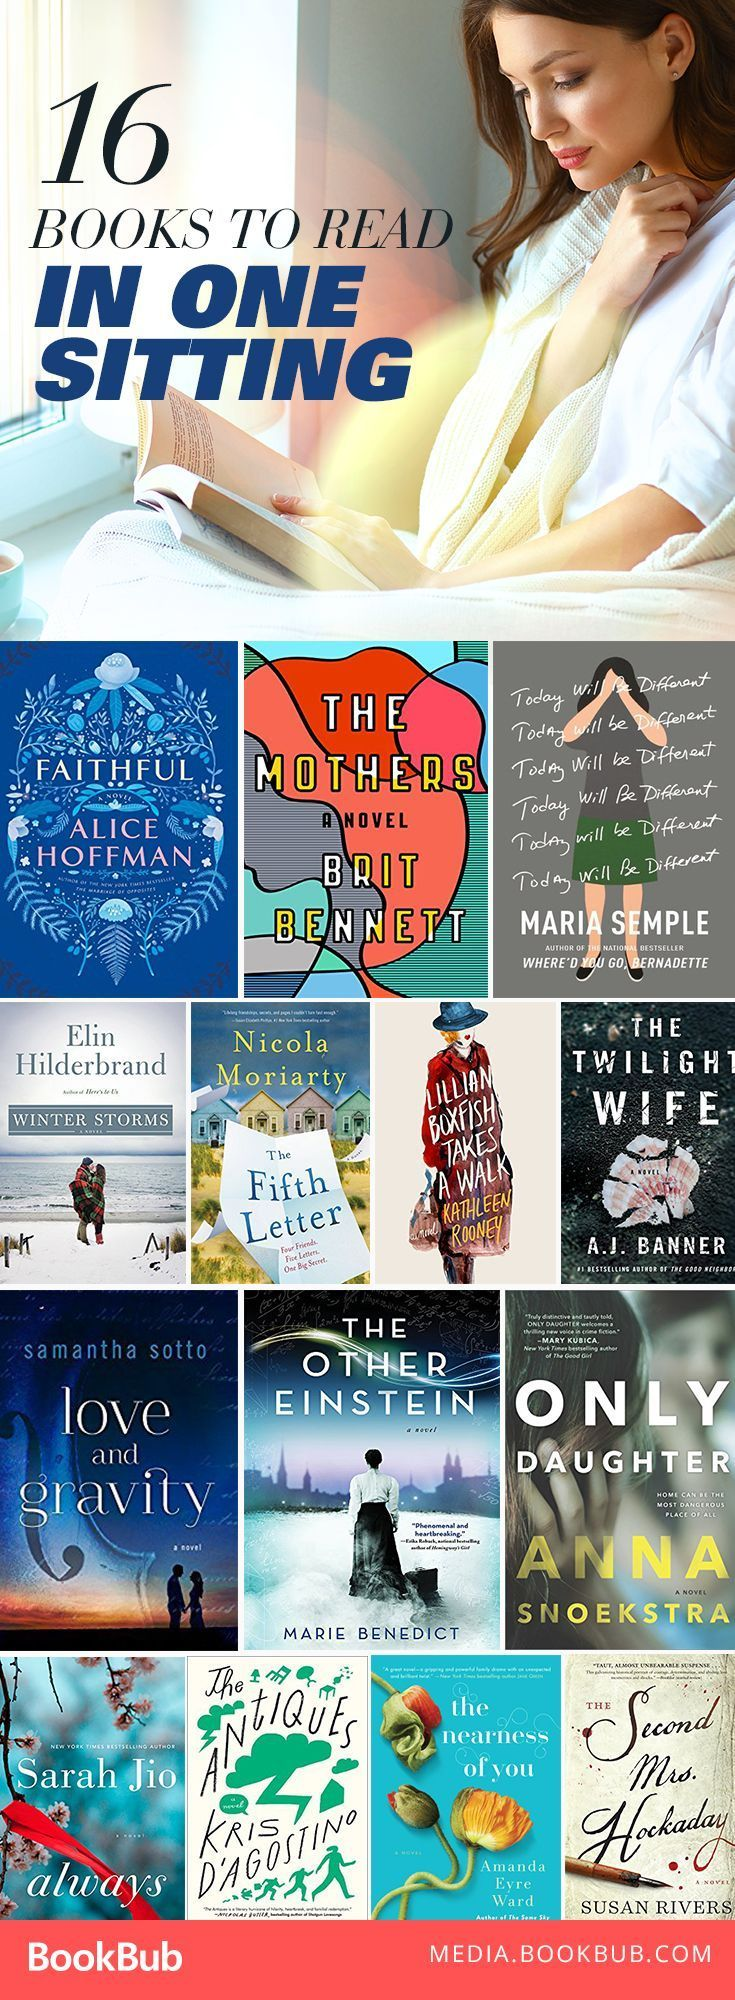 These titles are perfect to read in one sitting. Some great books worth reading this year!